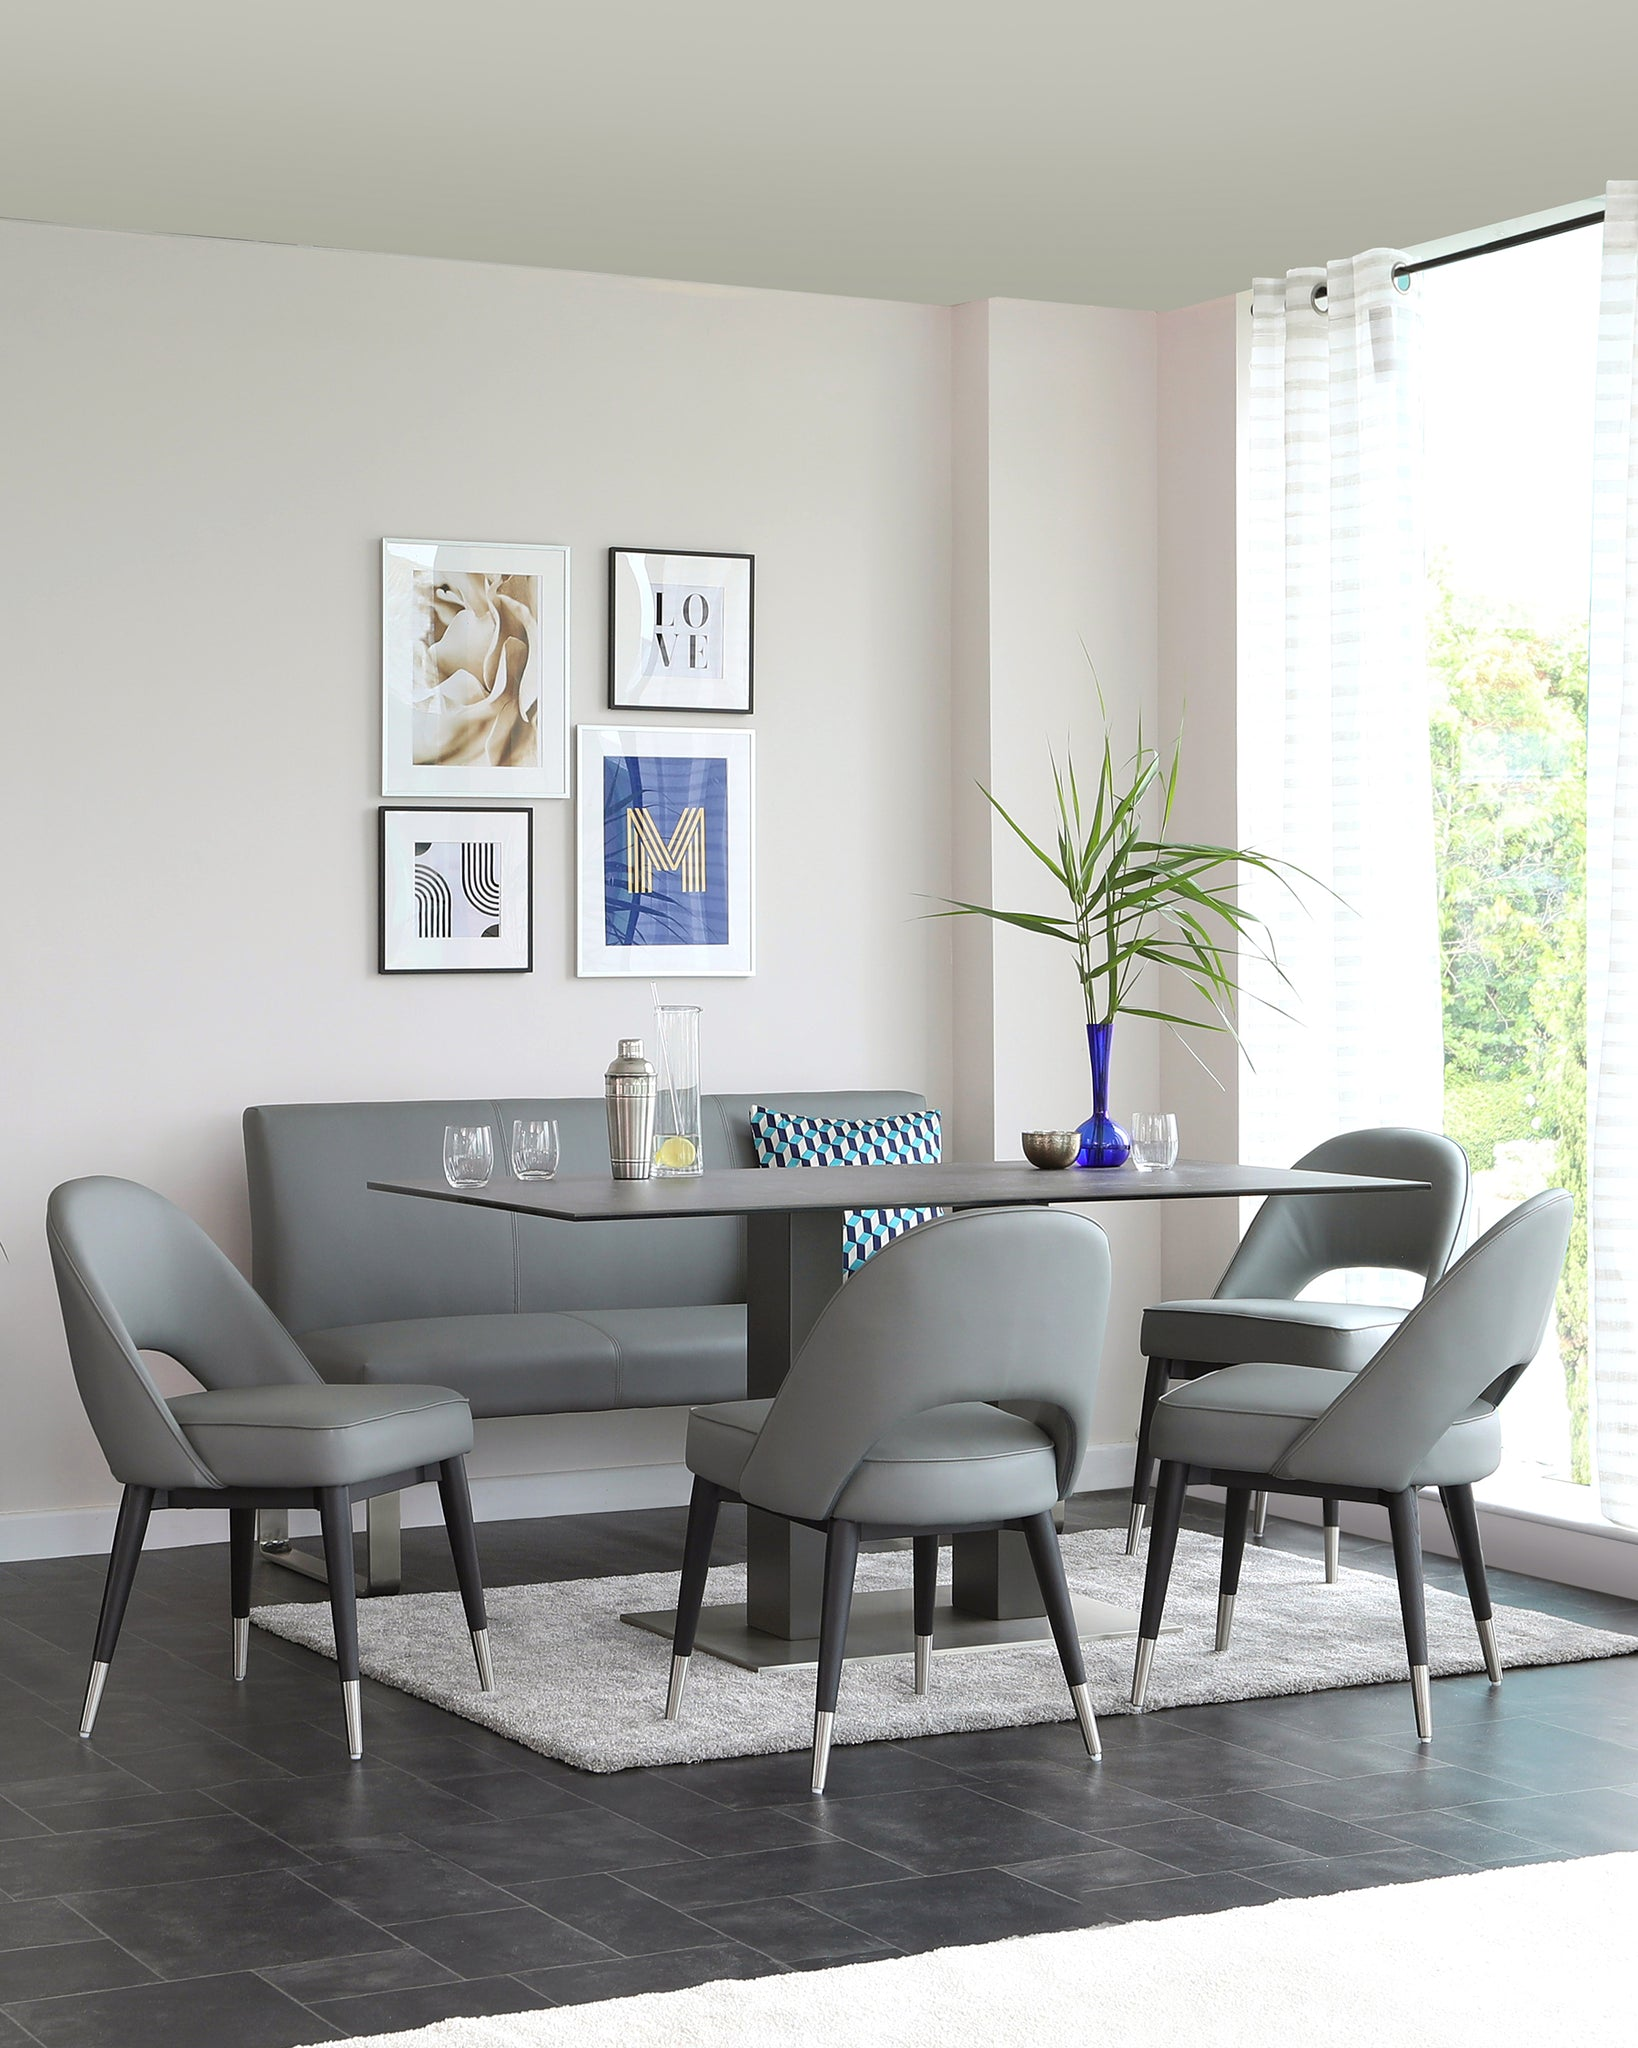 Mia Grey Ceramic Table With Loop Dining Bench And Clover Chair Set